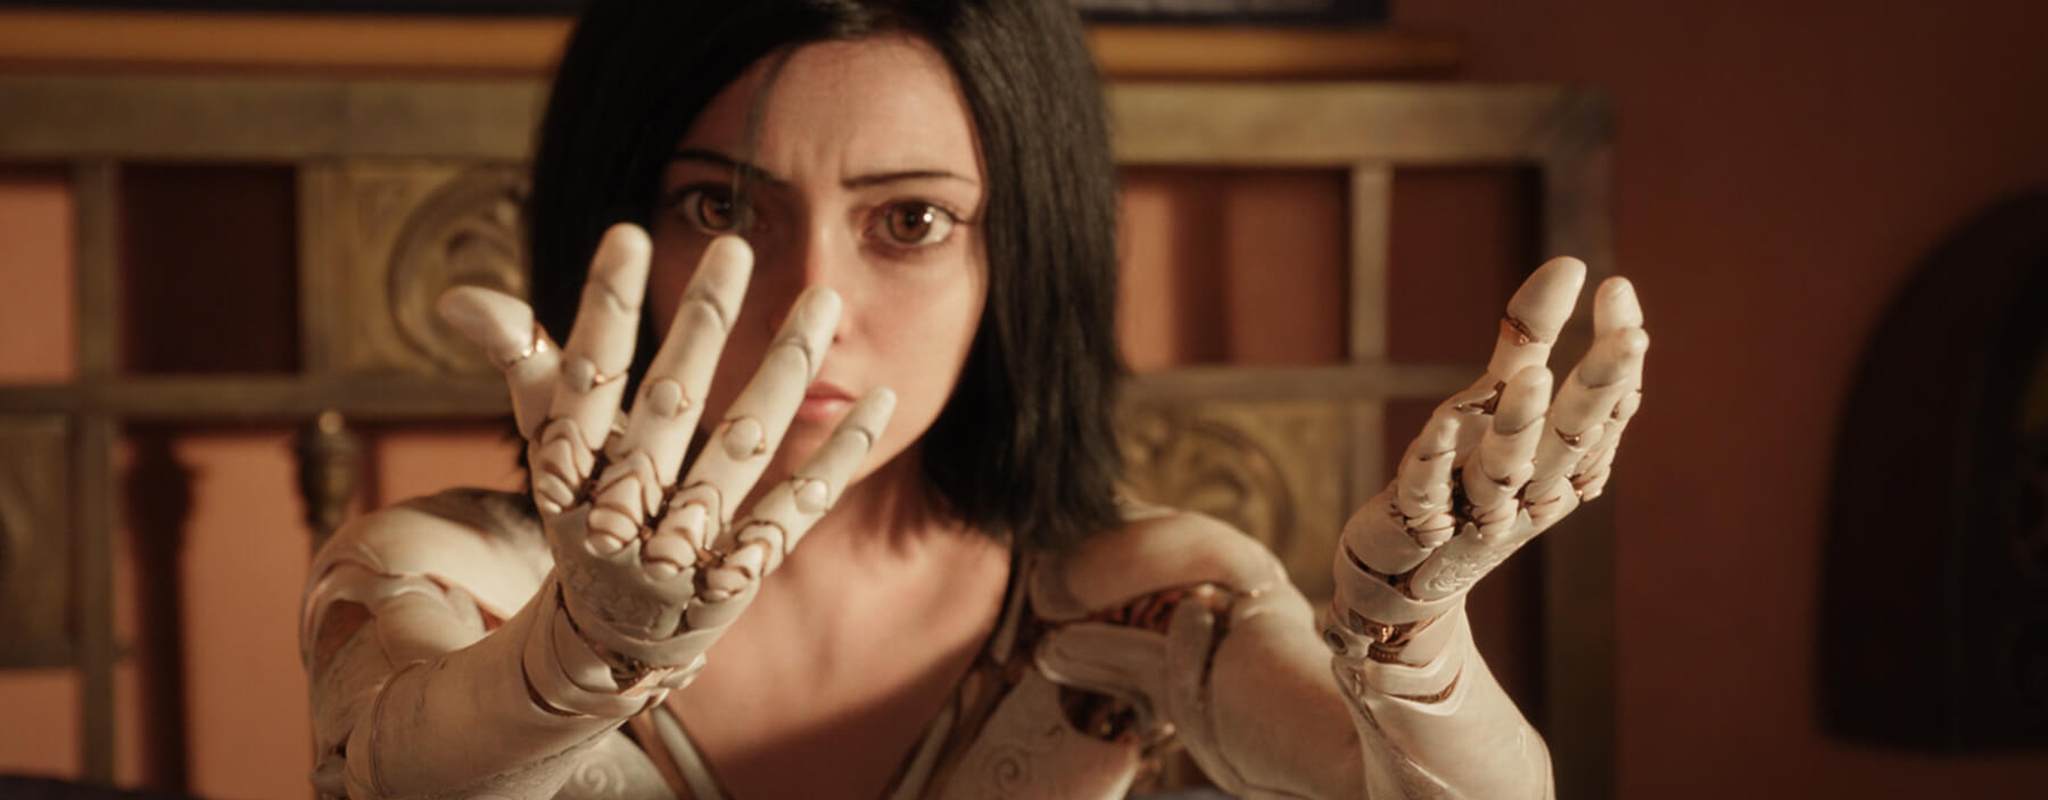 Alita : Battle Angel, le spectacle de la candeur